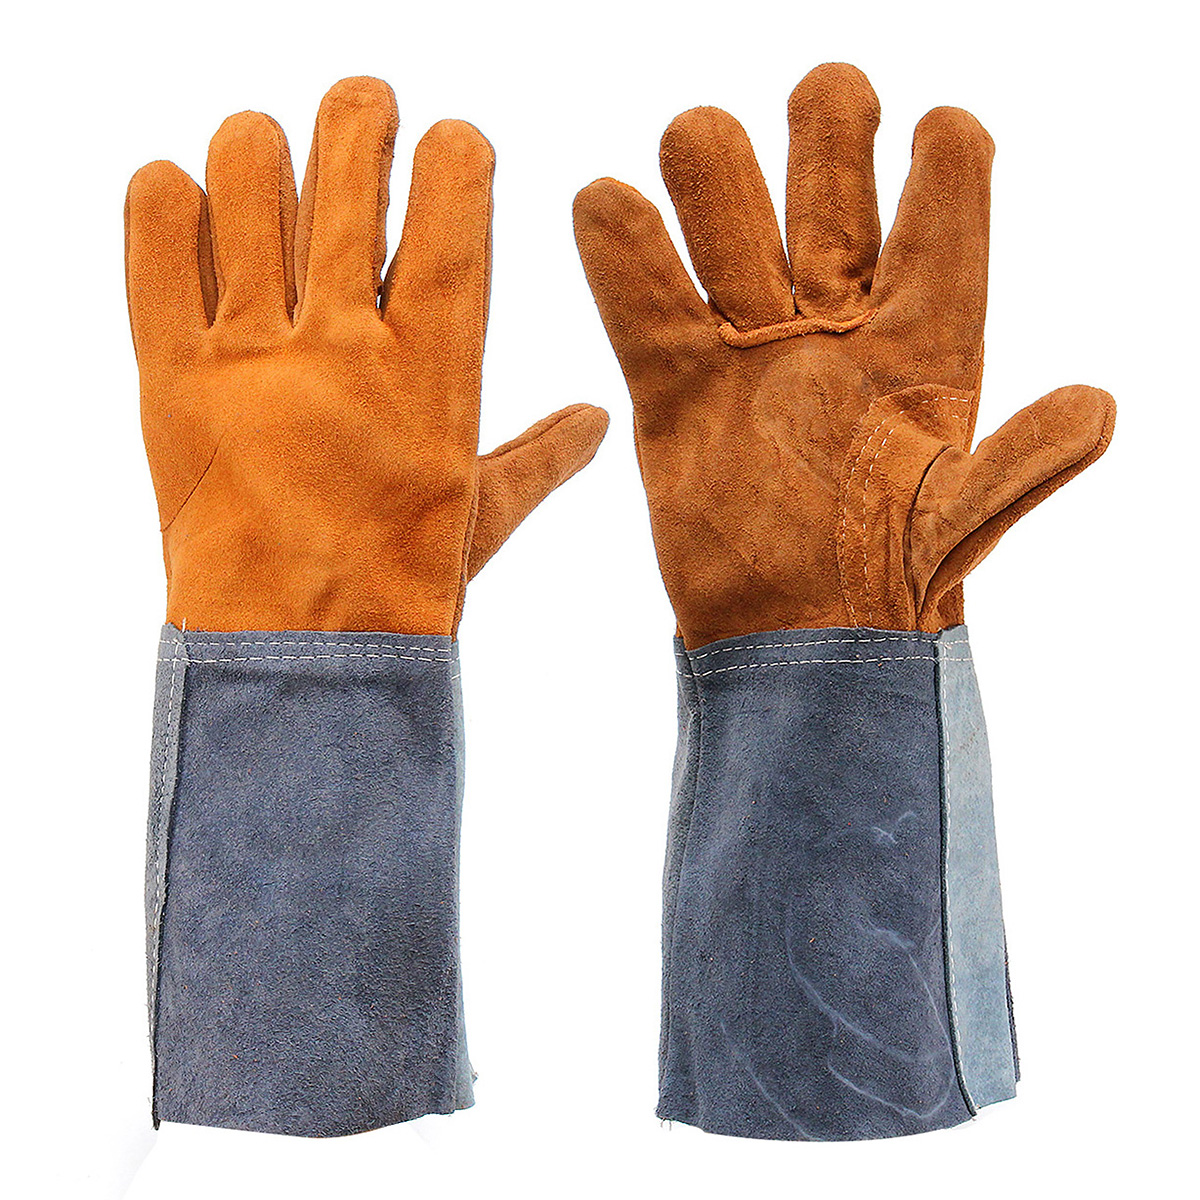 Welding Gloves Protective Thicken Welders Work Soft Palm Cowhide Leather Plus Gloves